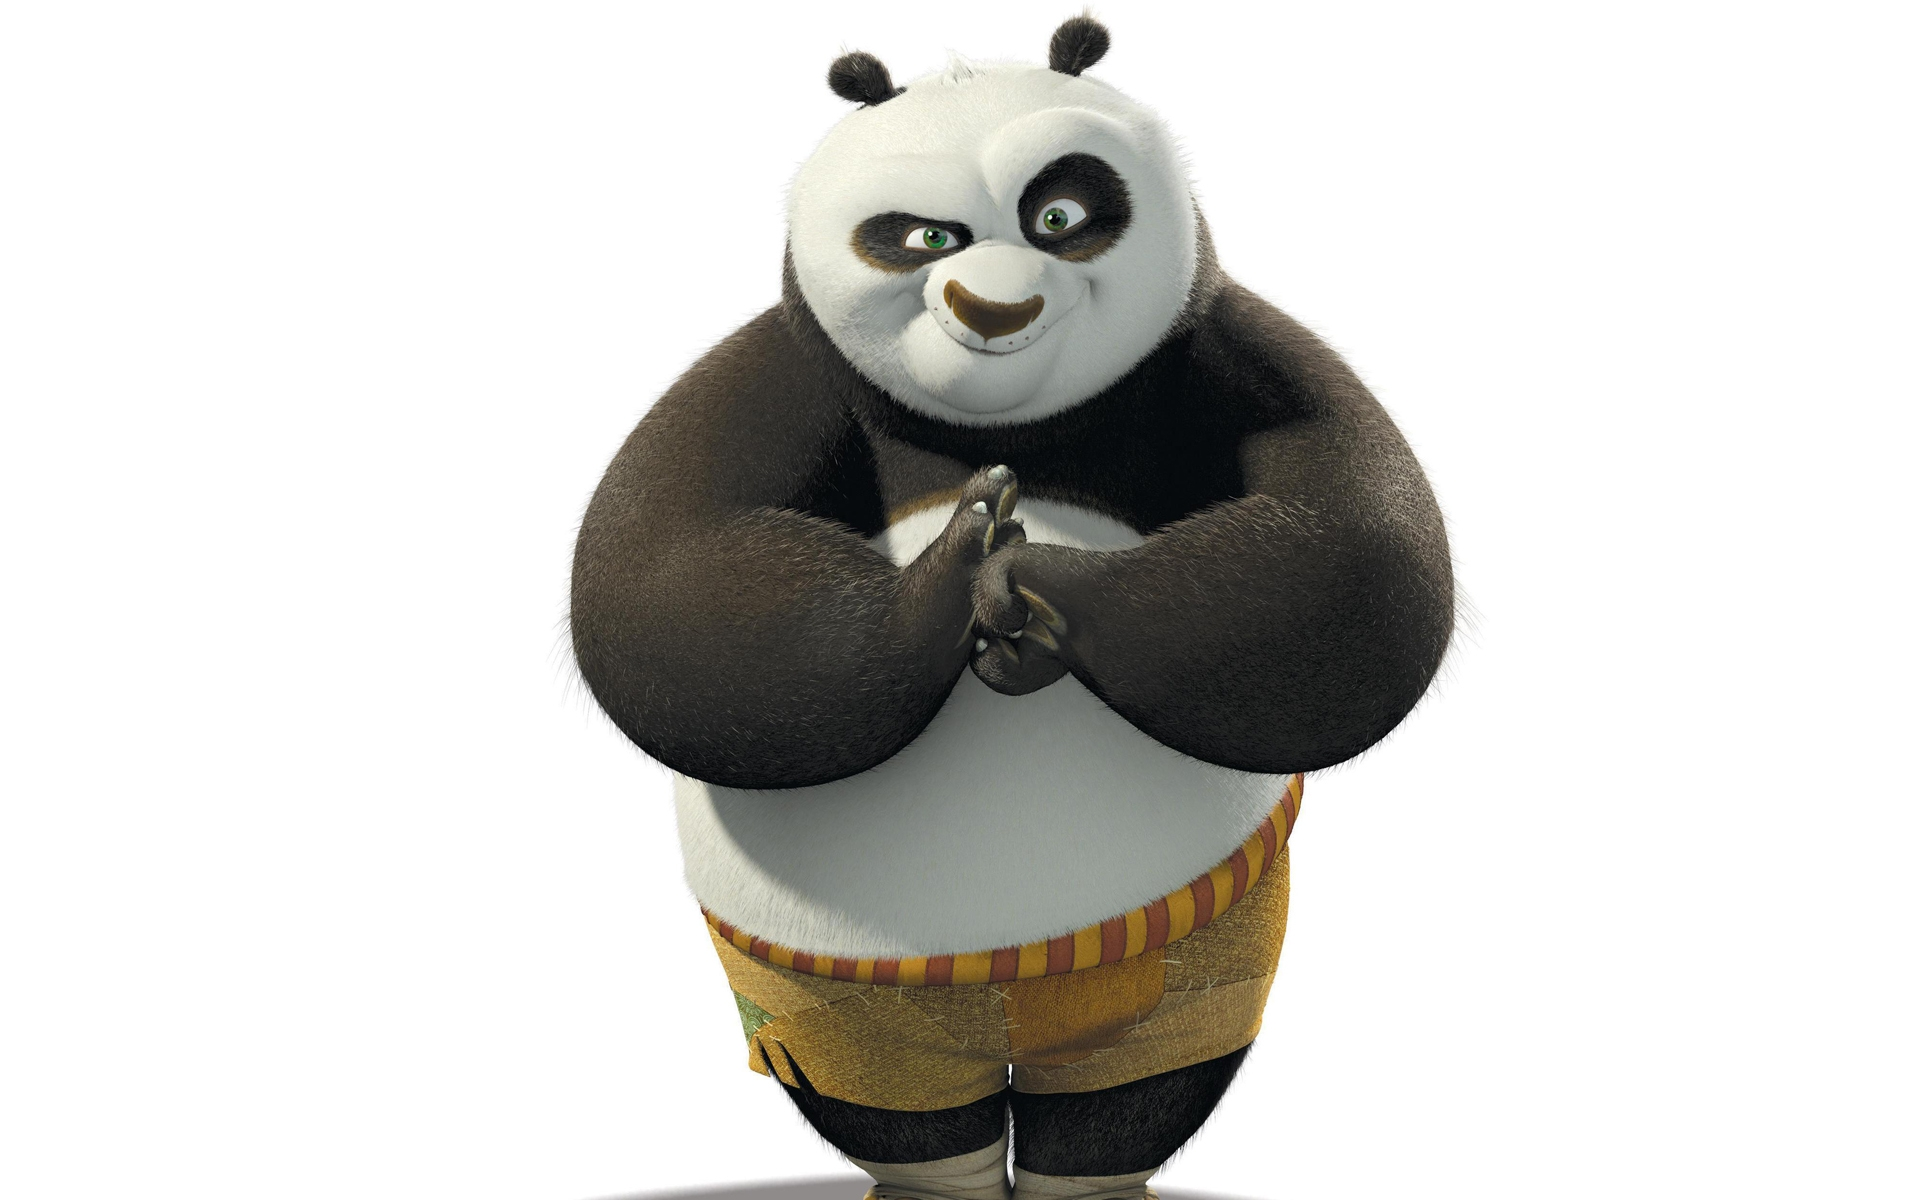 Kung Fu Panda Best Quality Wallpapers PlusPng.com  - Kung Fu Panda PNG HD